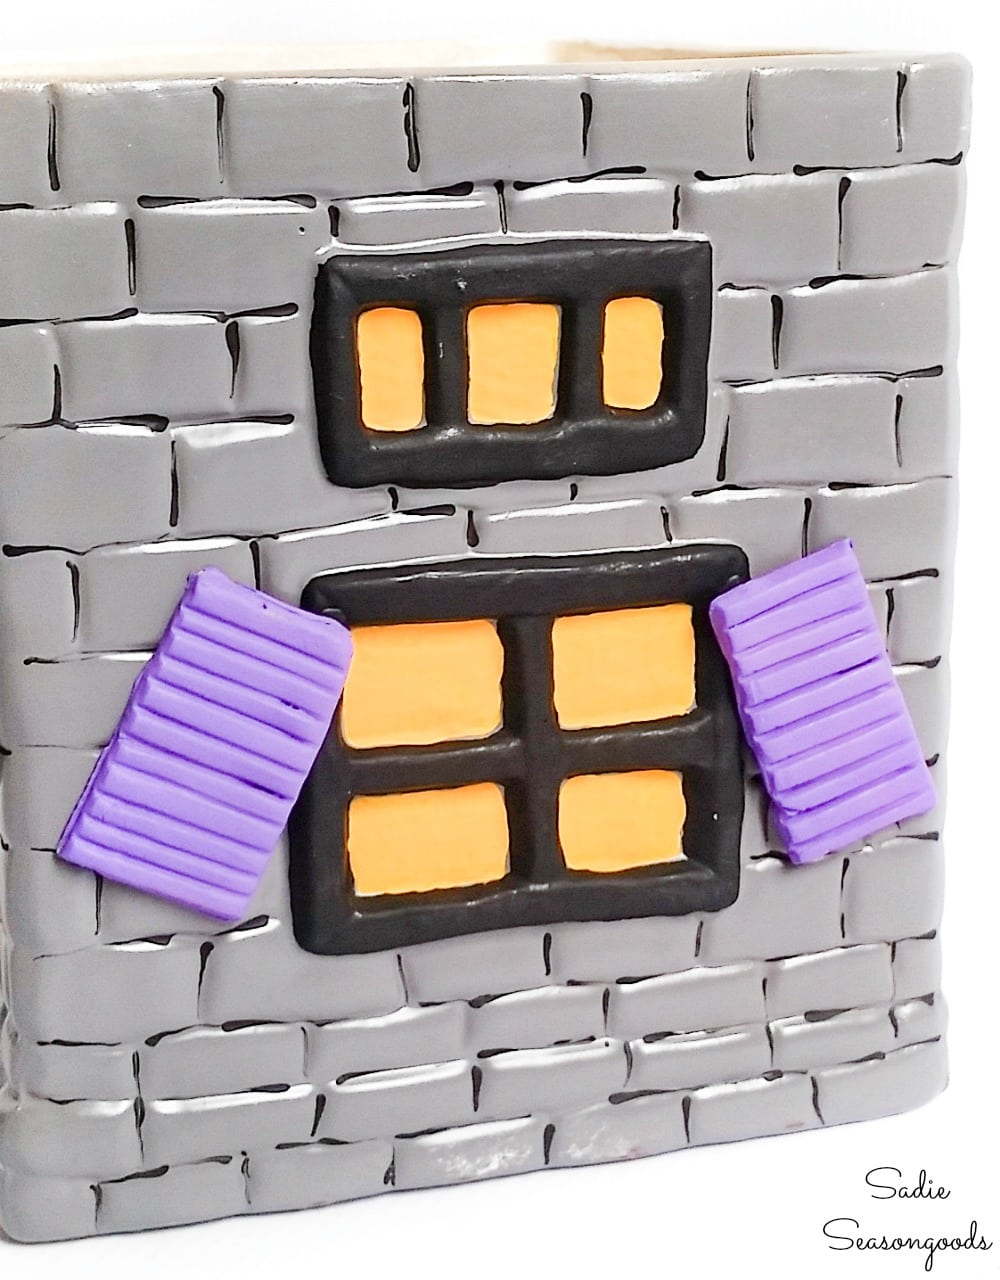 Shutters for a Halloween cookie jar from self drying clay